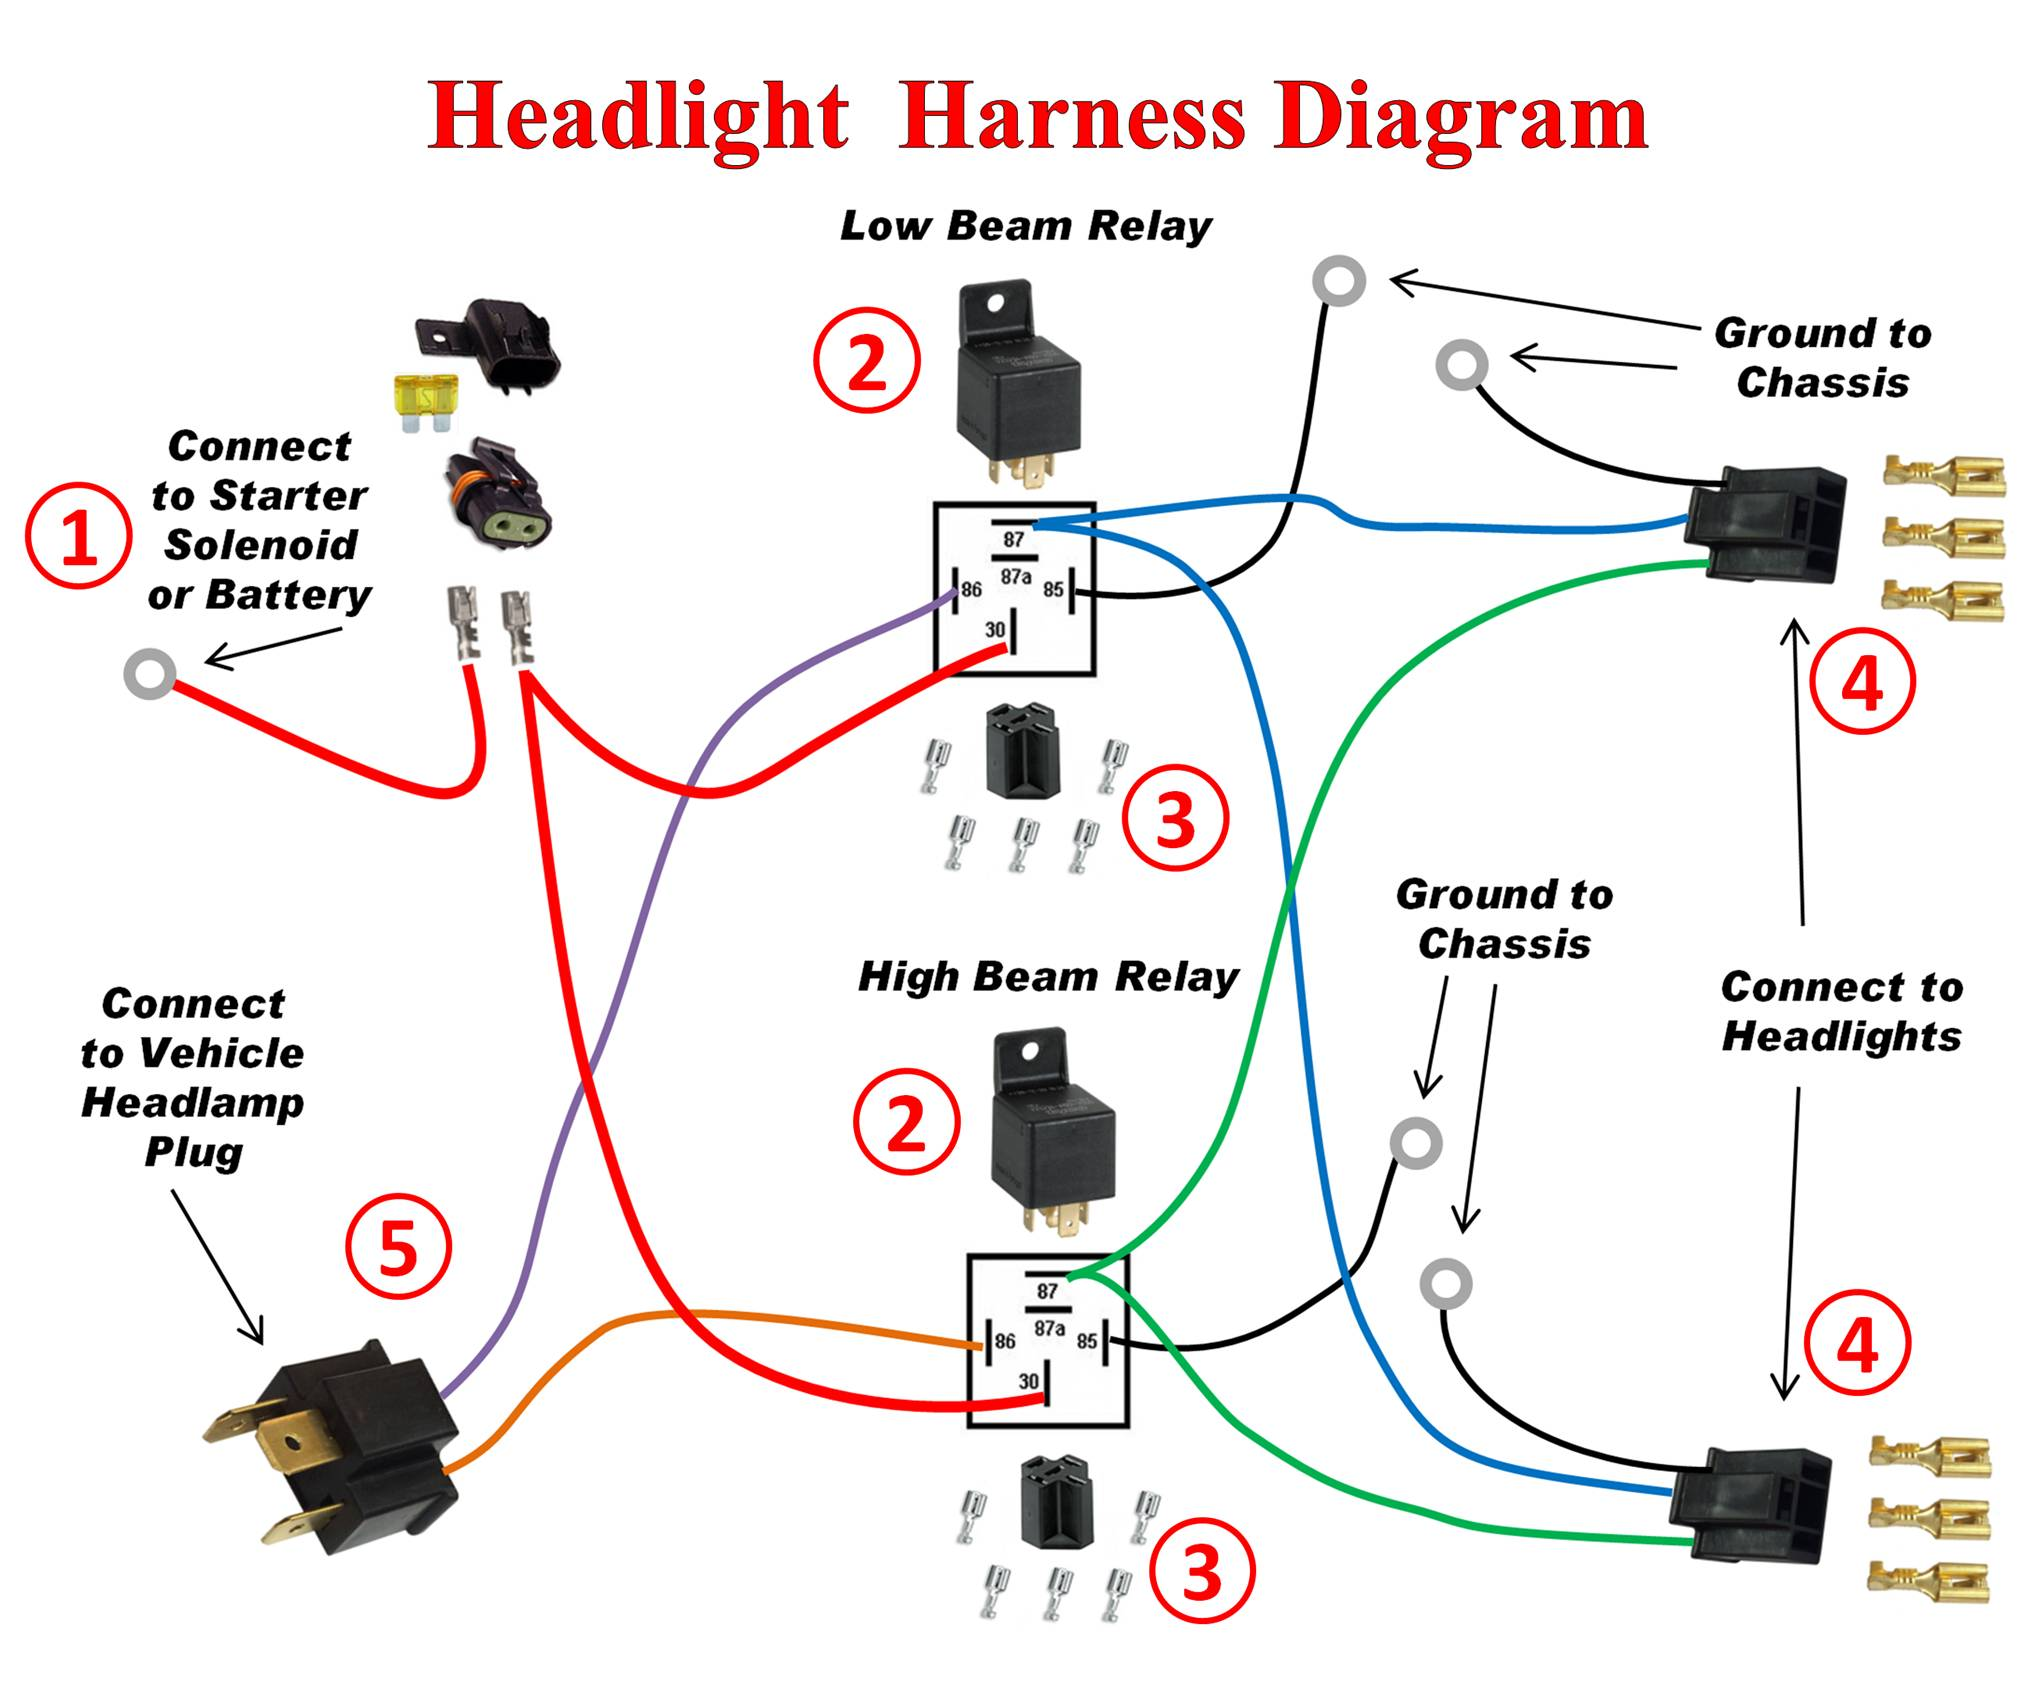 DIAGRAM] Gm Headlight Wiring Diagram Free Download Wiring Diagram FULL  Version HD Quality Wiring Diagram - LUTZ-DIAGRAM.DISCOCLASSIC.ITDiagram Database - discoclassic.it